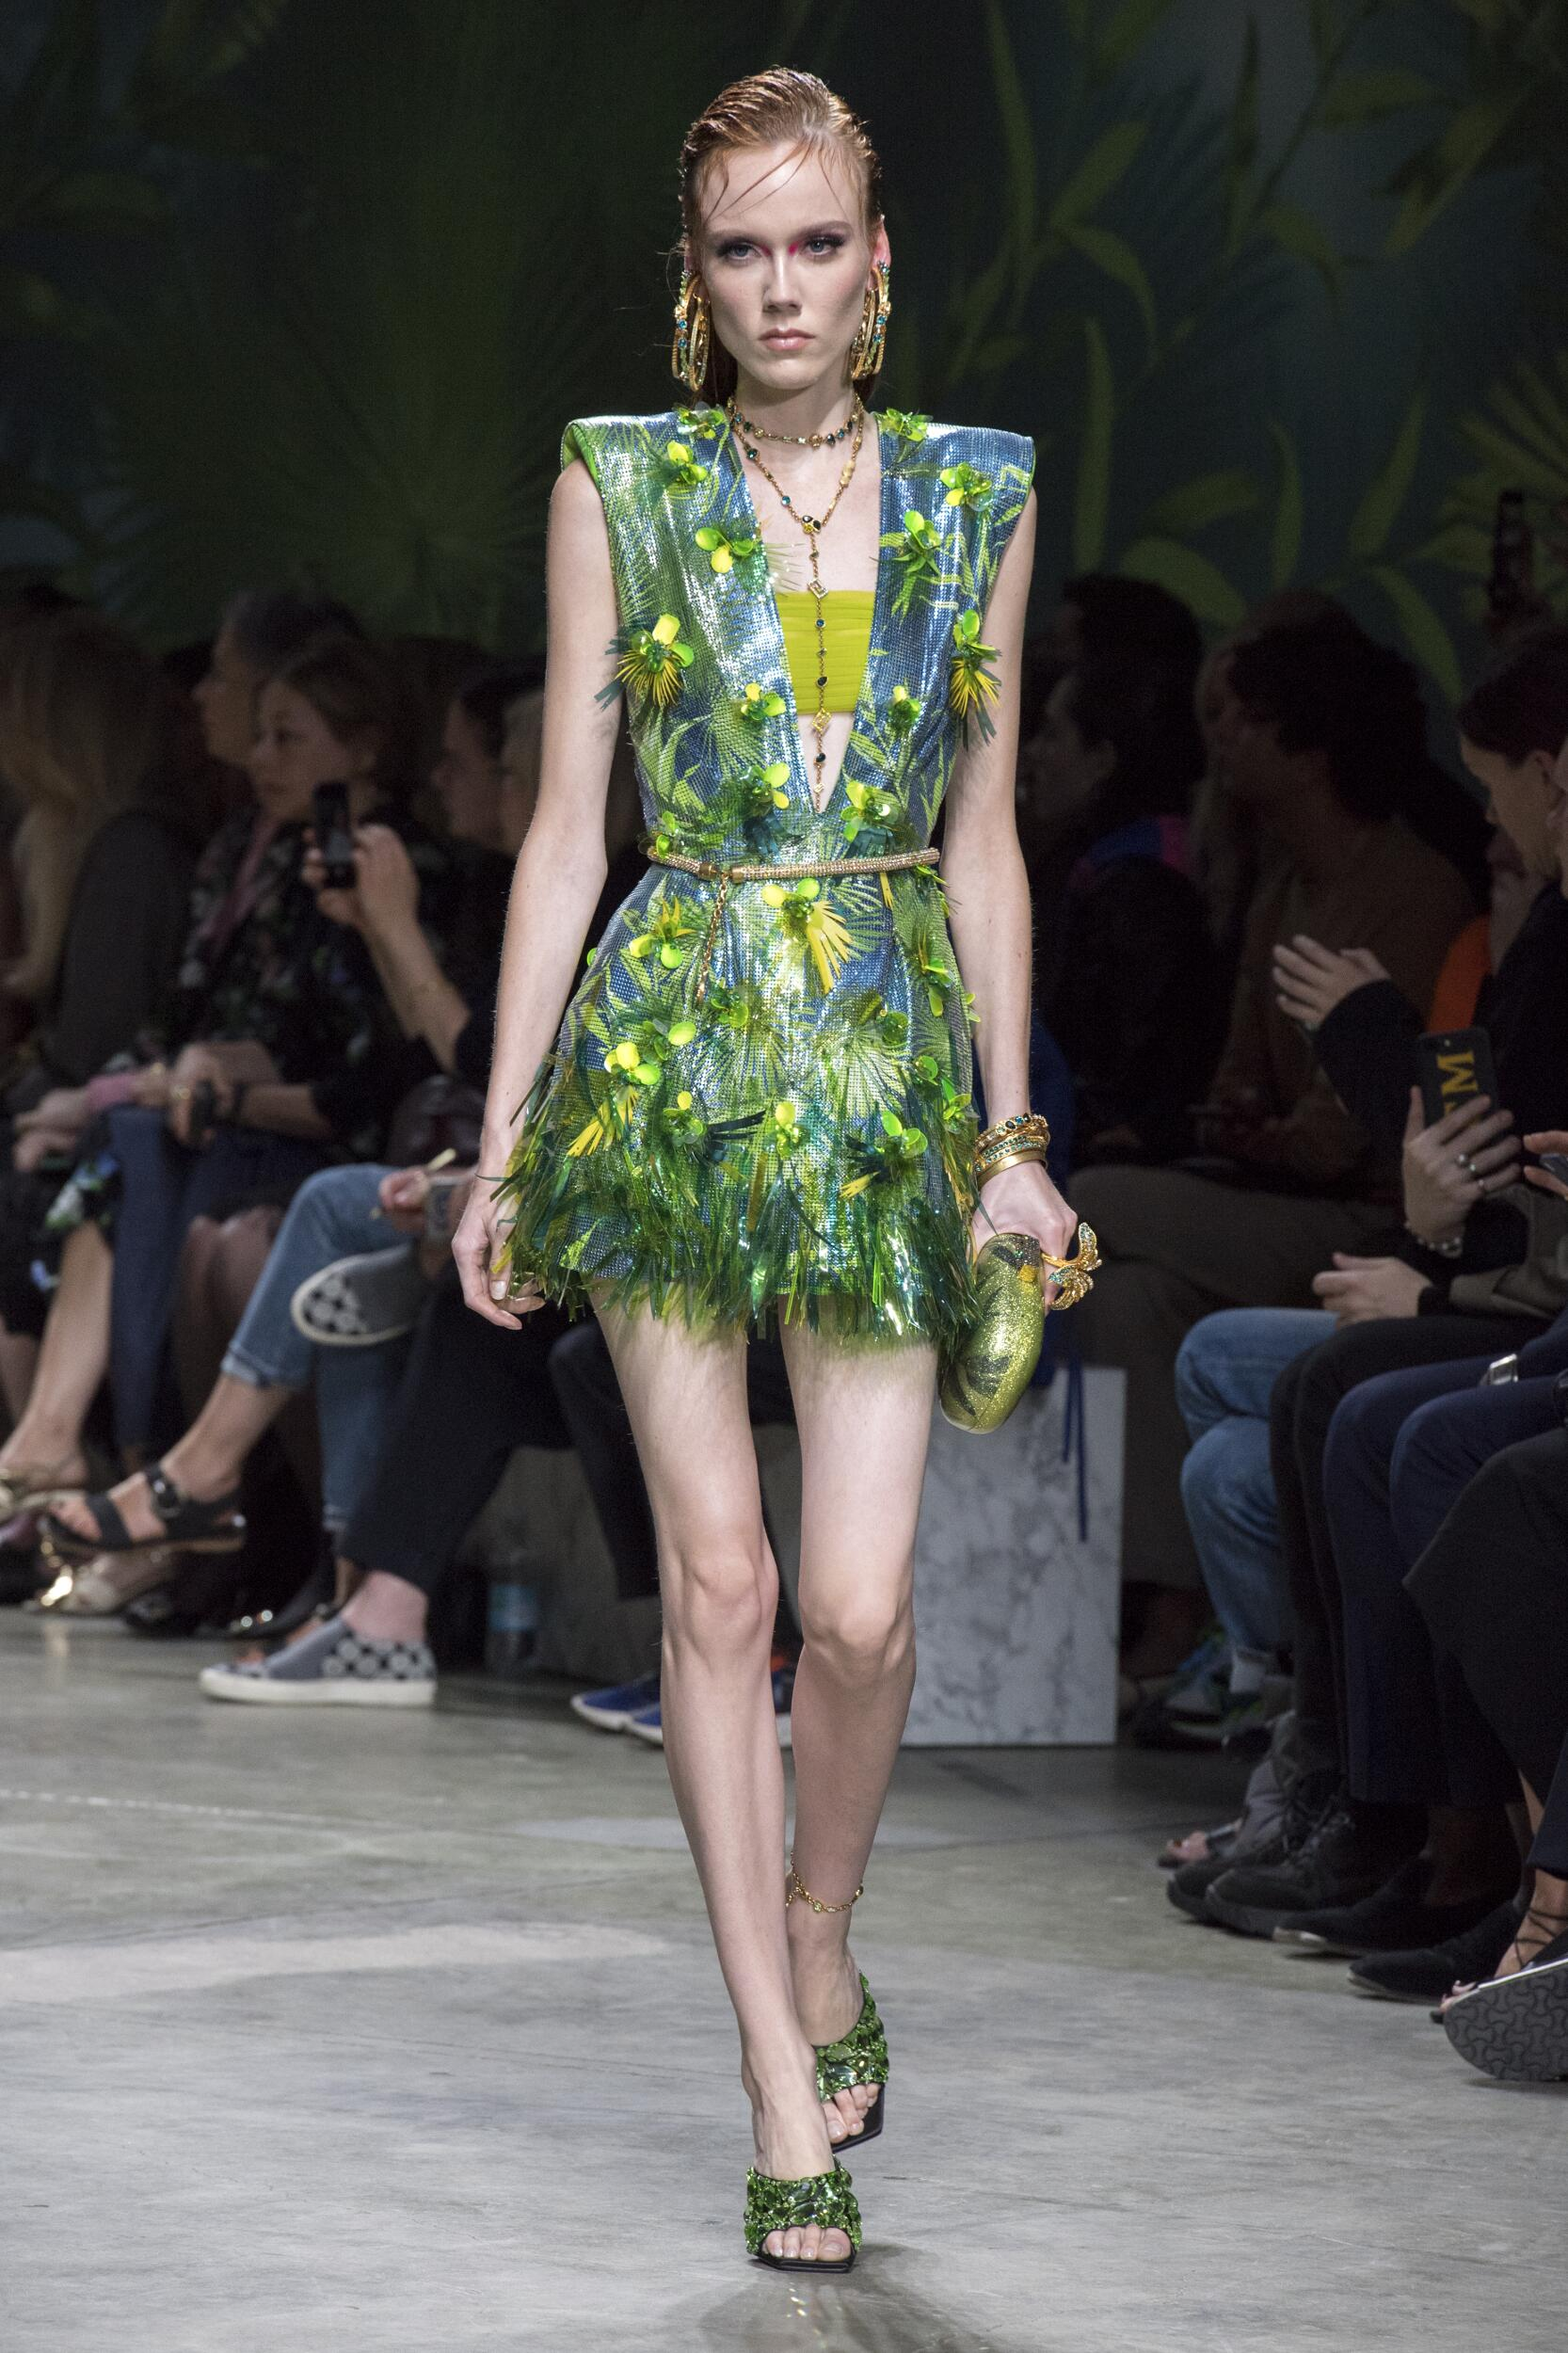 Woman SS 2020 Versace Show Milan Fashion Week